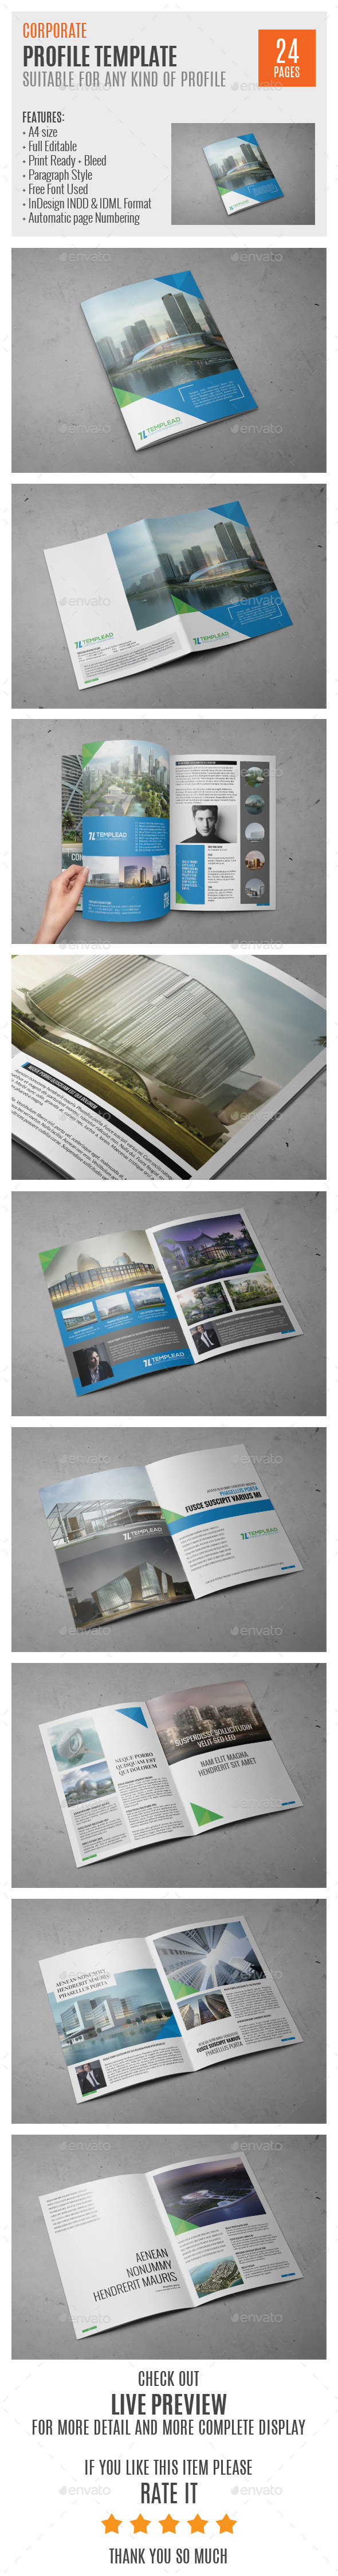 Corporate Profile A4 InDesign Template 0032